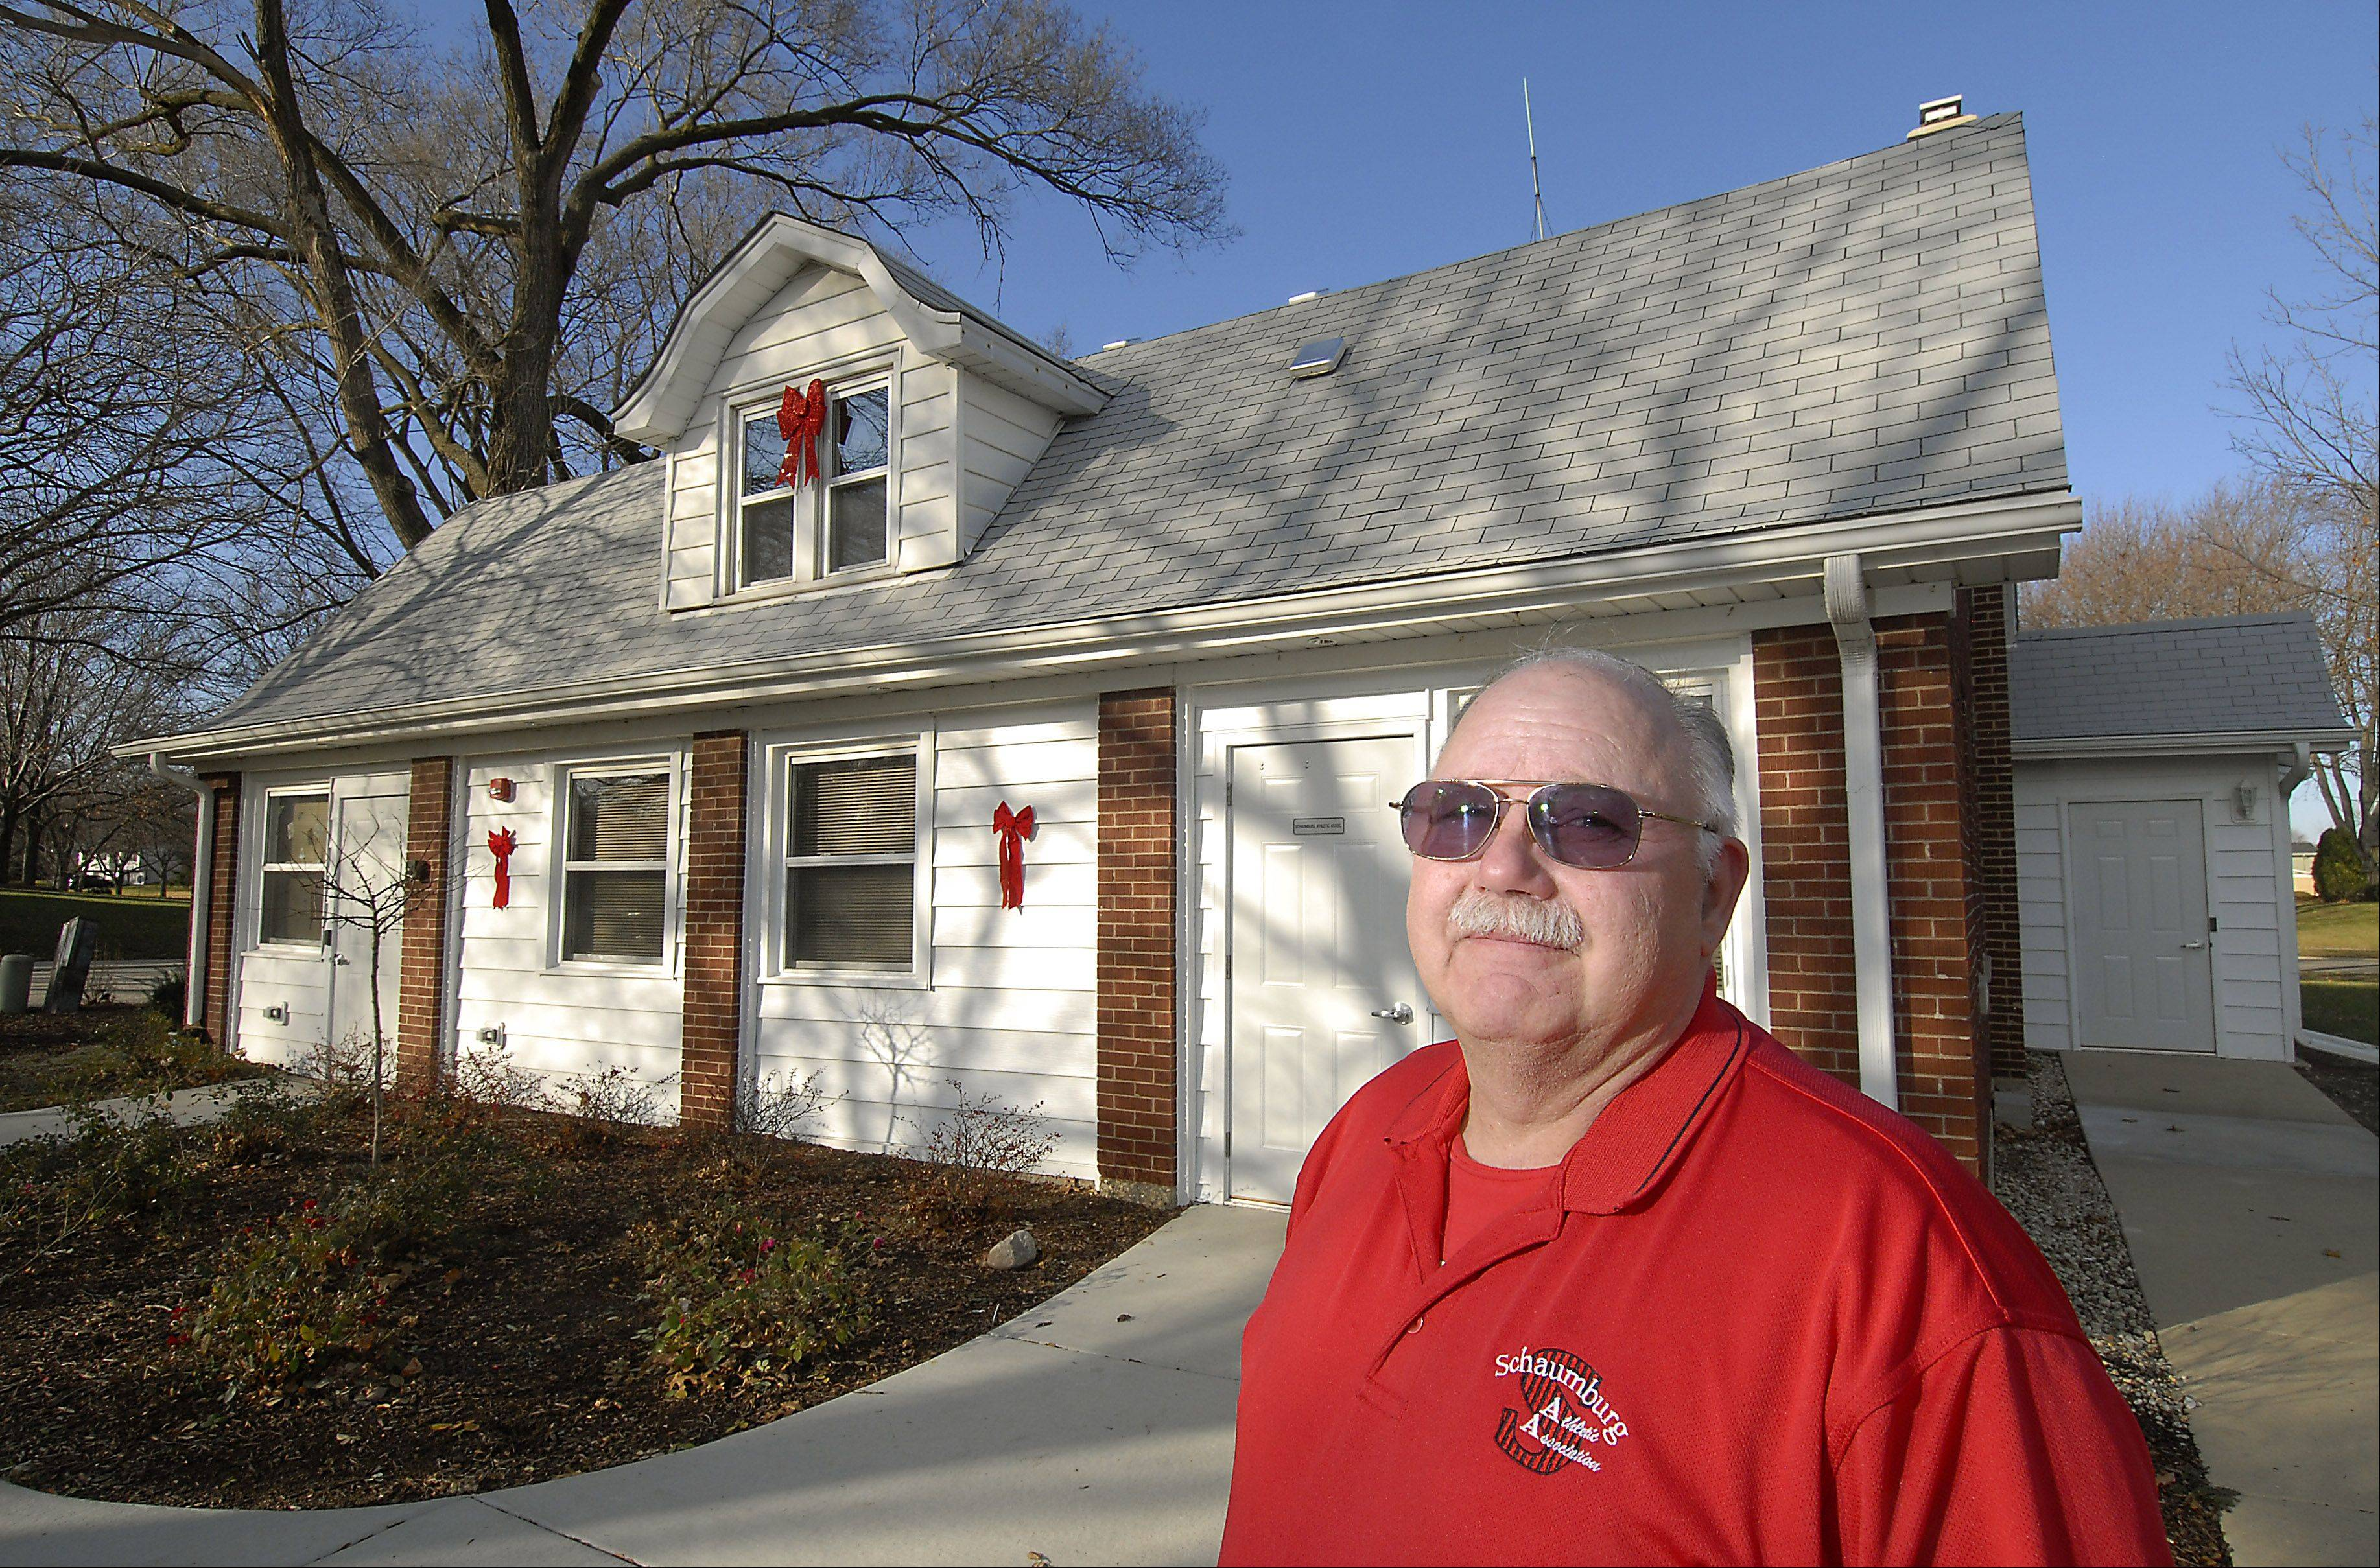 The Schaumburg Athletic Association has renovated the village of Schaumburg's old carriage house that had been slated for demolition, using only volunteers. Mike Tracy, who does public relations for the group, was amazed at all the hard work that was done by volunteers on the project.